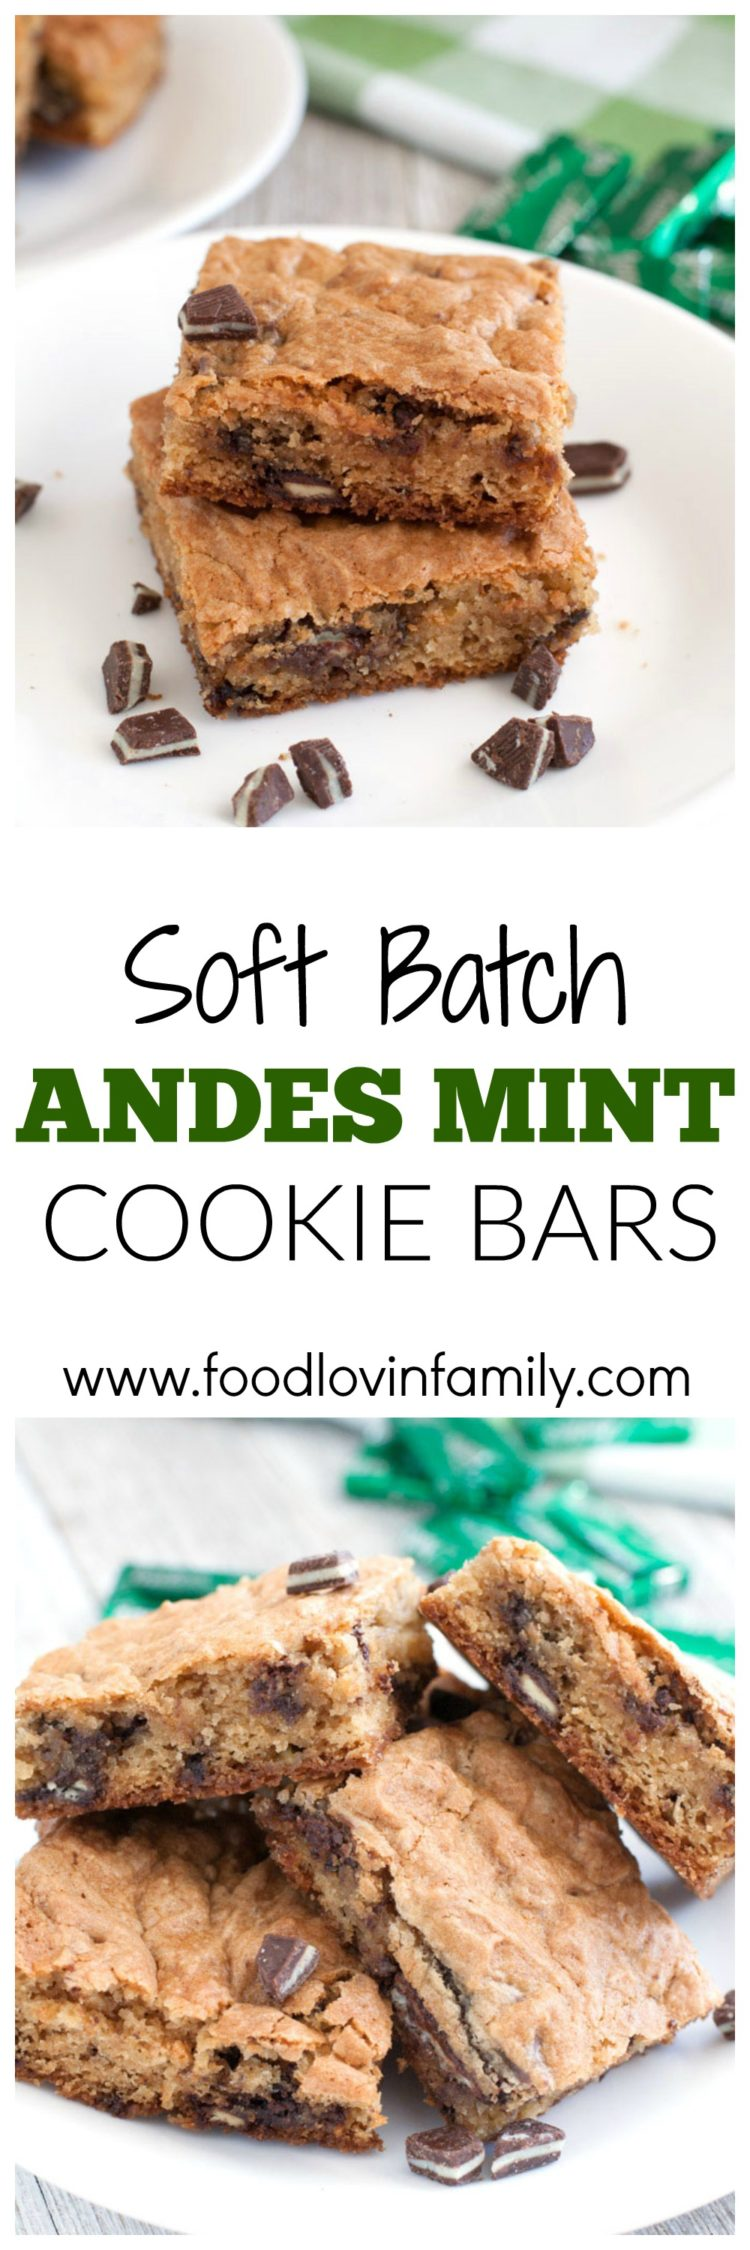 Soft Batch Andes Mint Cookie Bars PIN